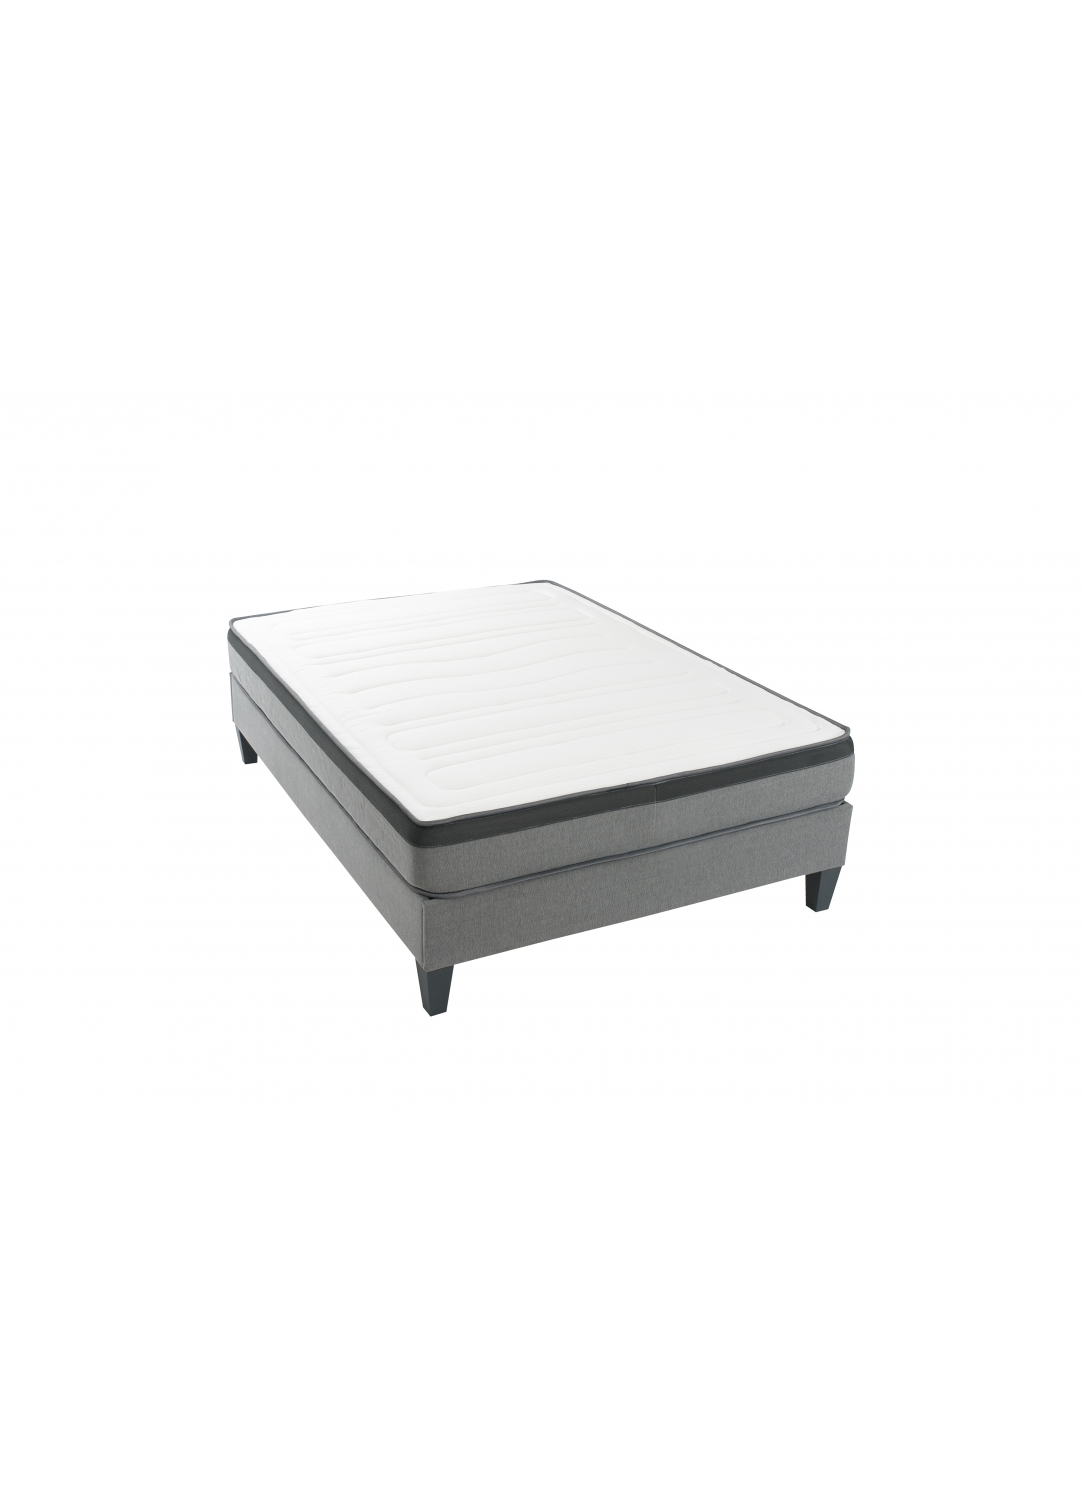 matelas neostar m moire de forme blanc homemaison vente en ligne matelas. Black Bedroom Furniture Sets. Home Design Ideas